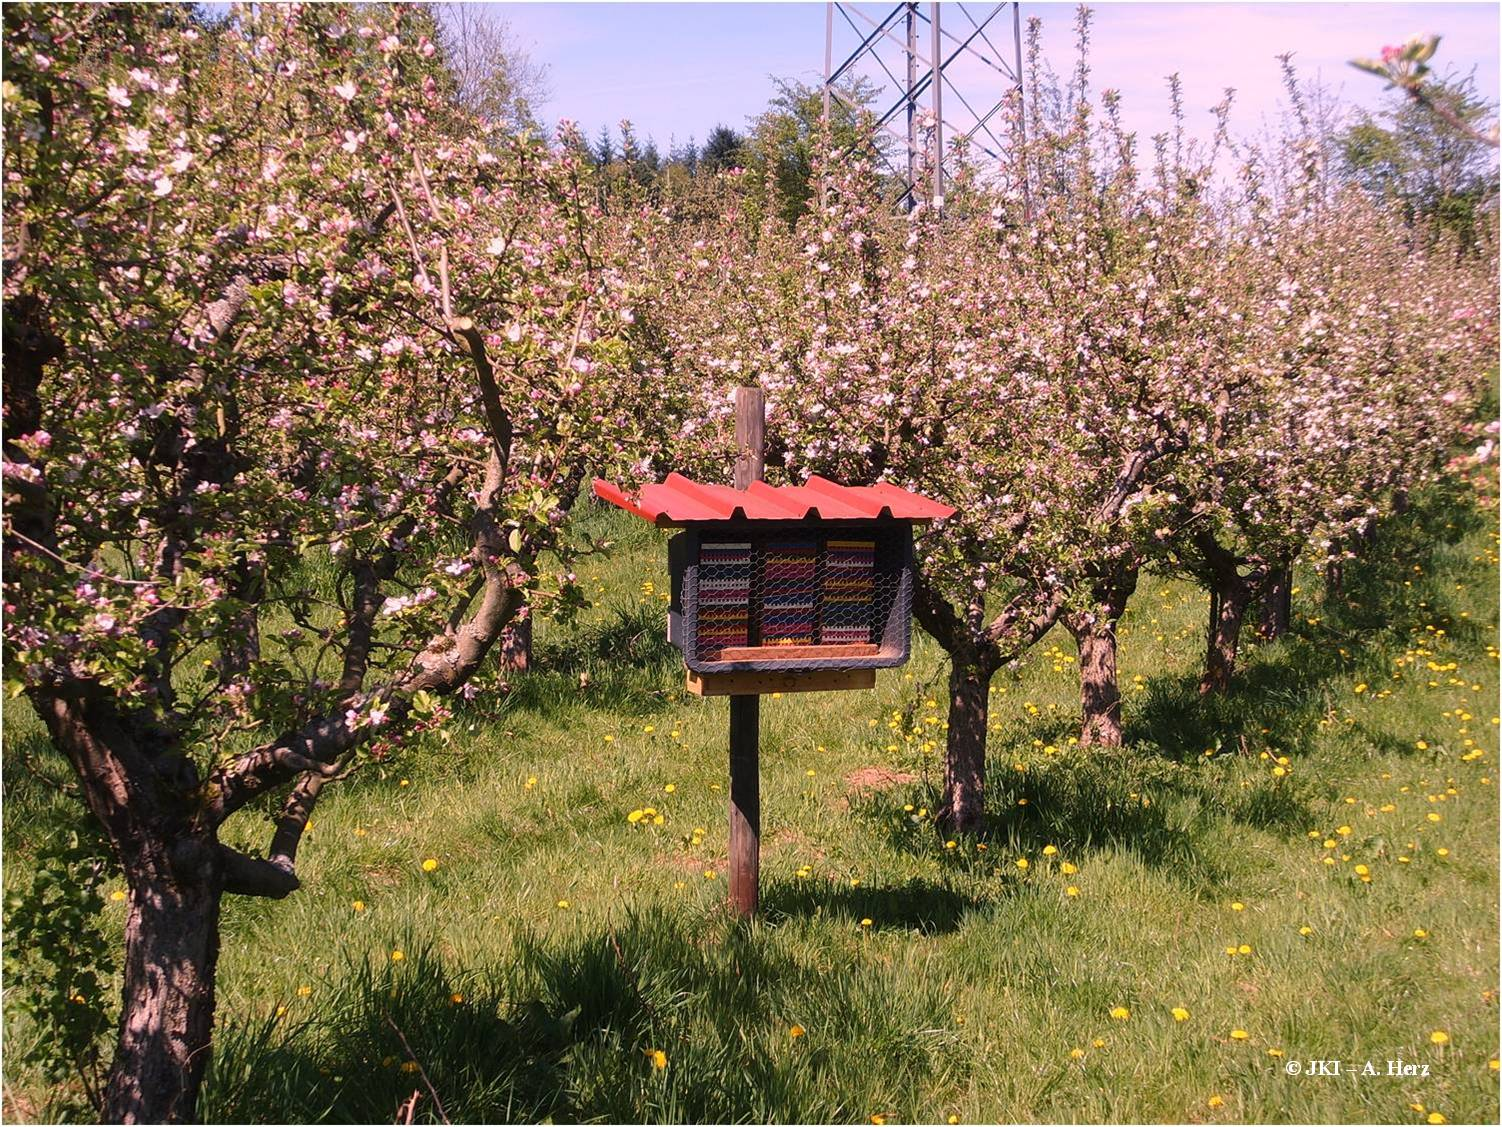 Flowering orchard with wild bee nesting box